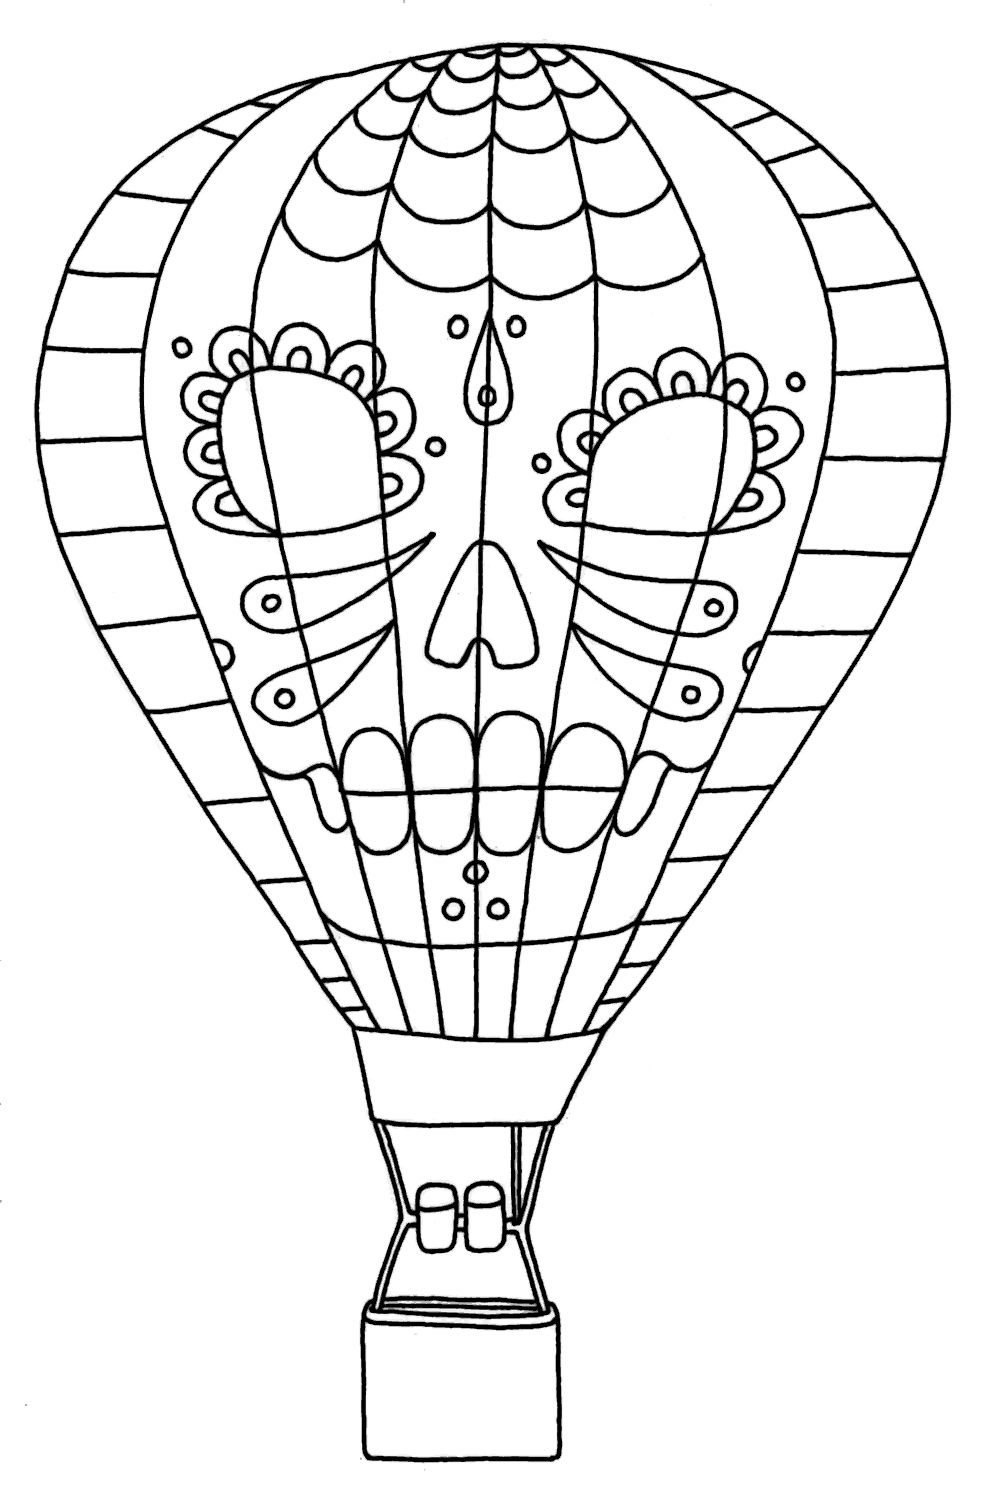 997x1504 Growth Hot Air Balloon Coloring Sheet Free Printable Pages